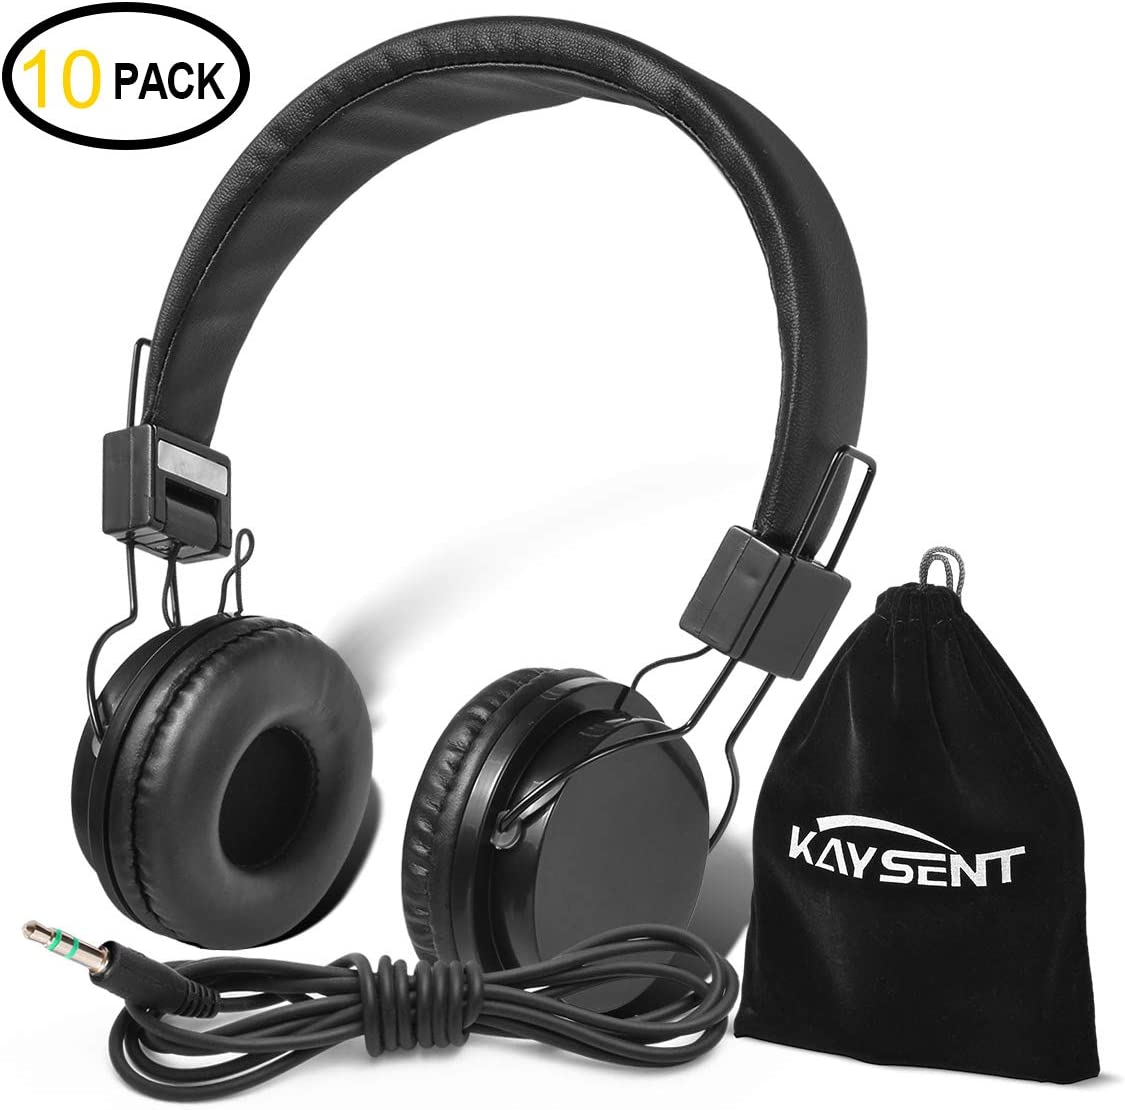 Kaysent Heavy Duty Headphones Set for Students – KHPB-10B 10 Packs Classroom Kids Headphones for School, Library, Computers, Children and Adult No Microphone